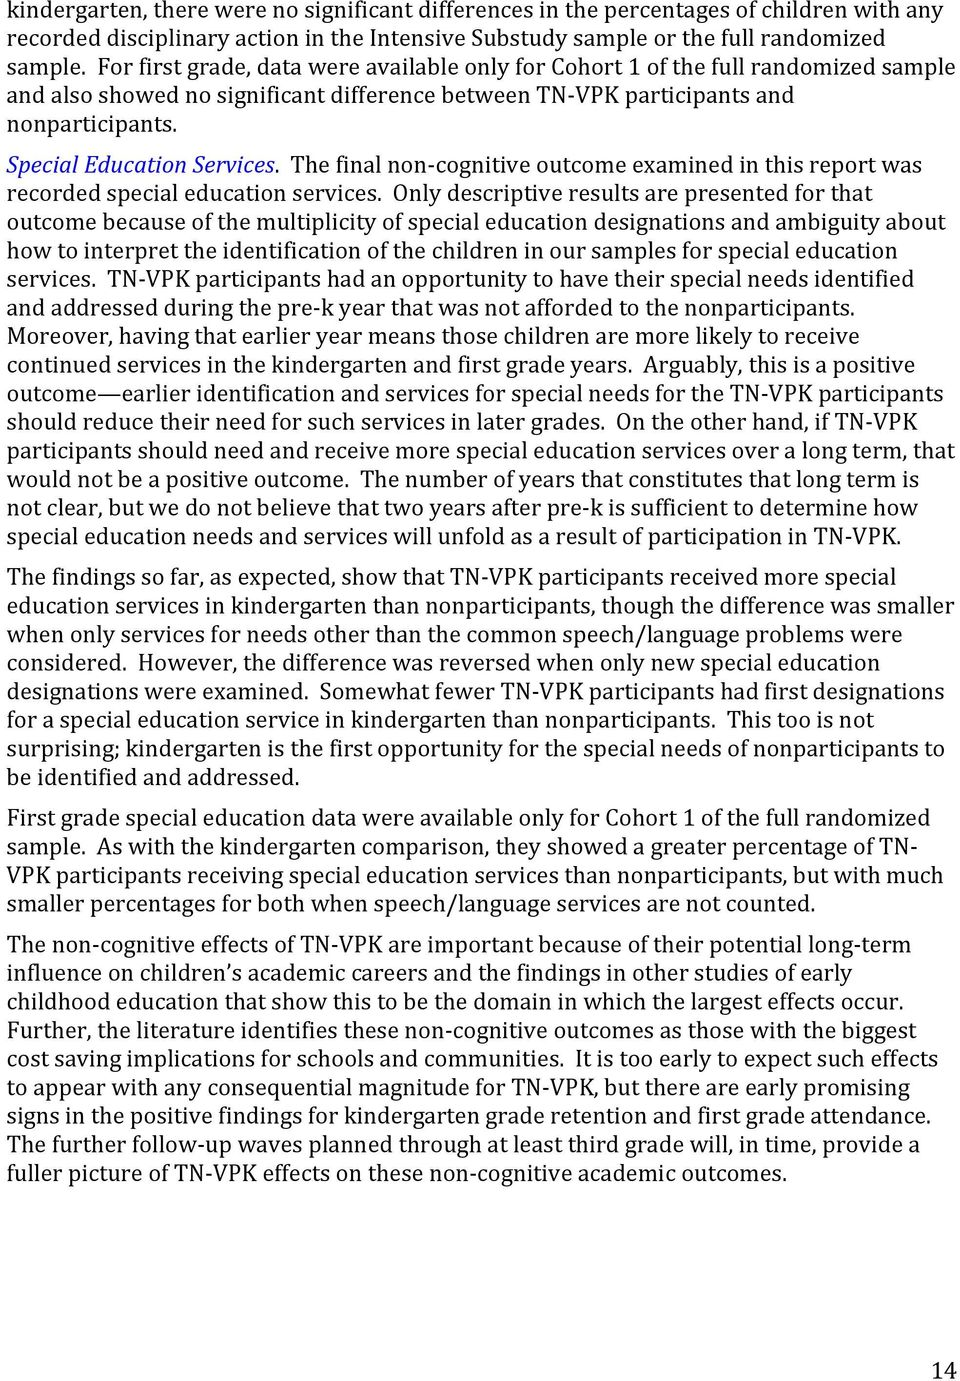 Special Education Services. The final non cognitive outcome examined in this report was recorded special education services.